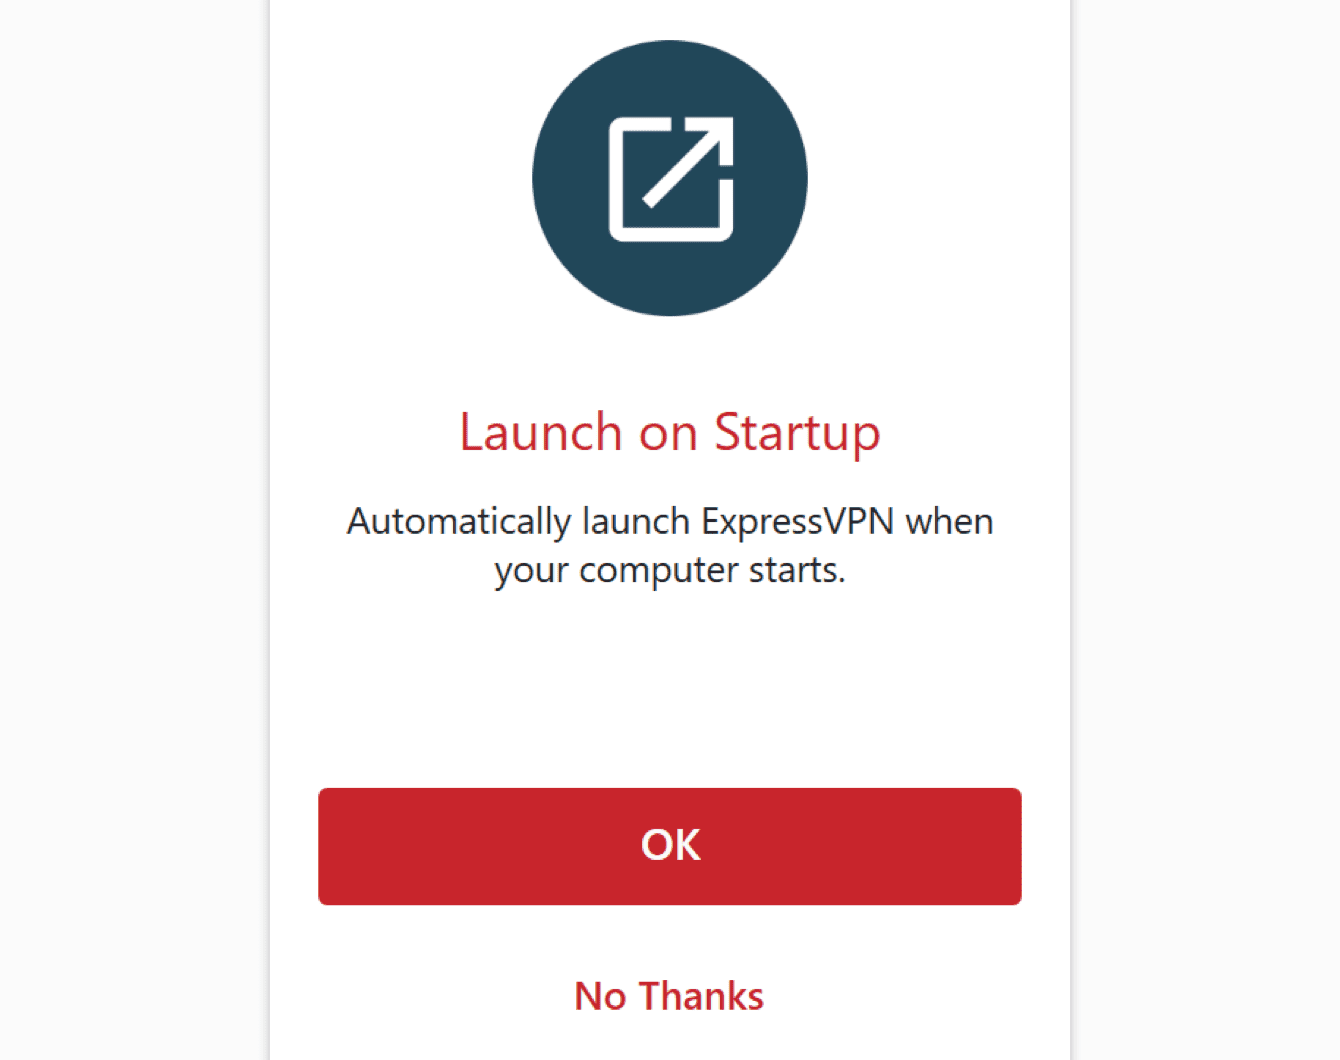 Select your preference for launching ExpressVPN on startup.